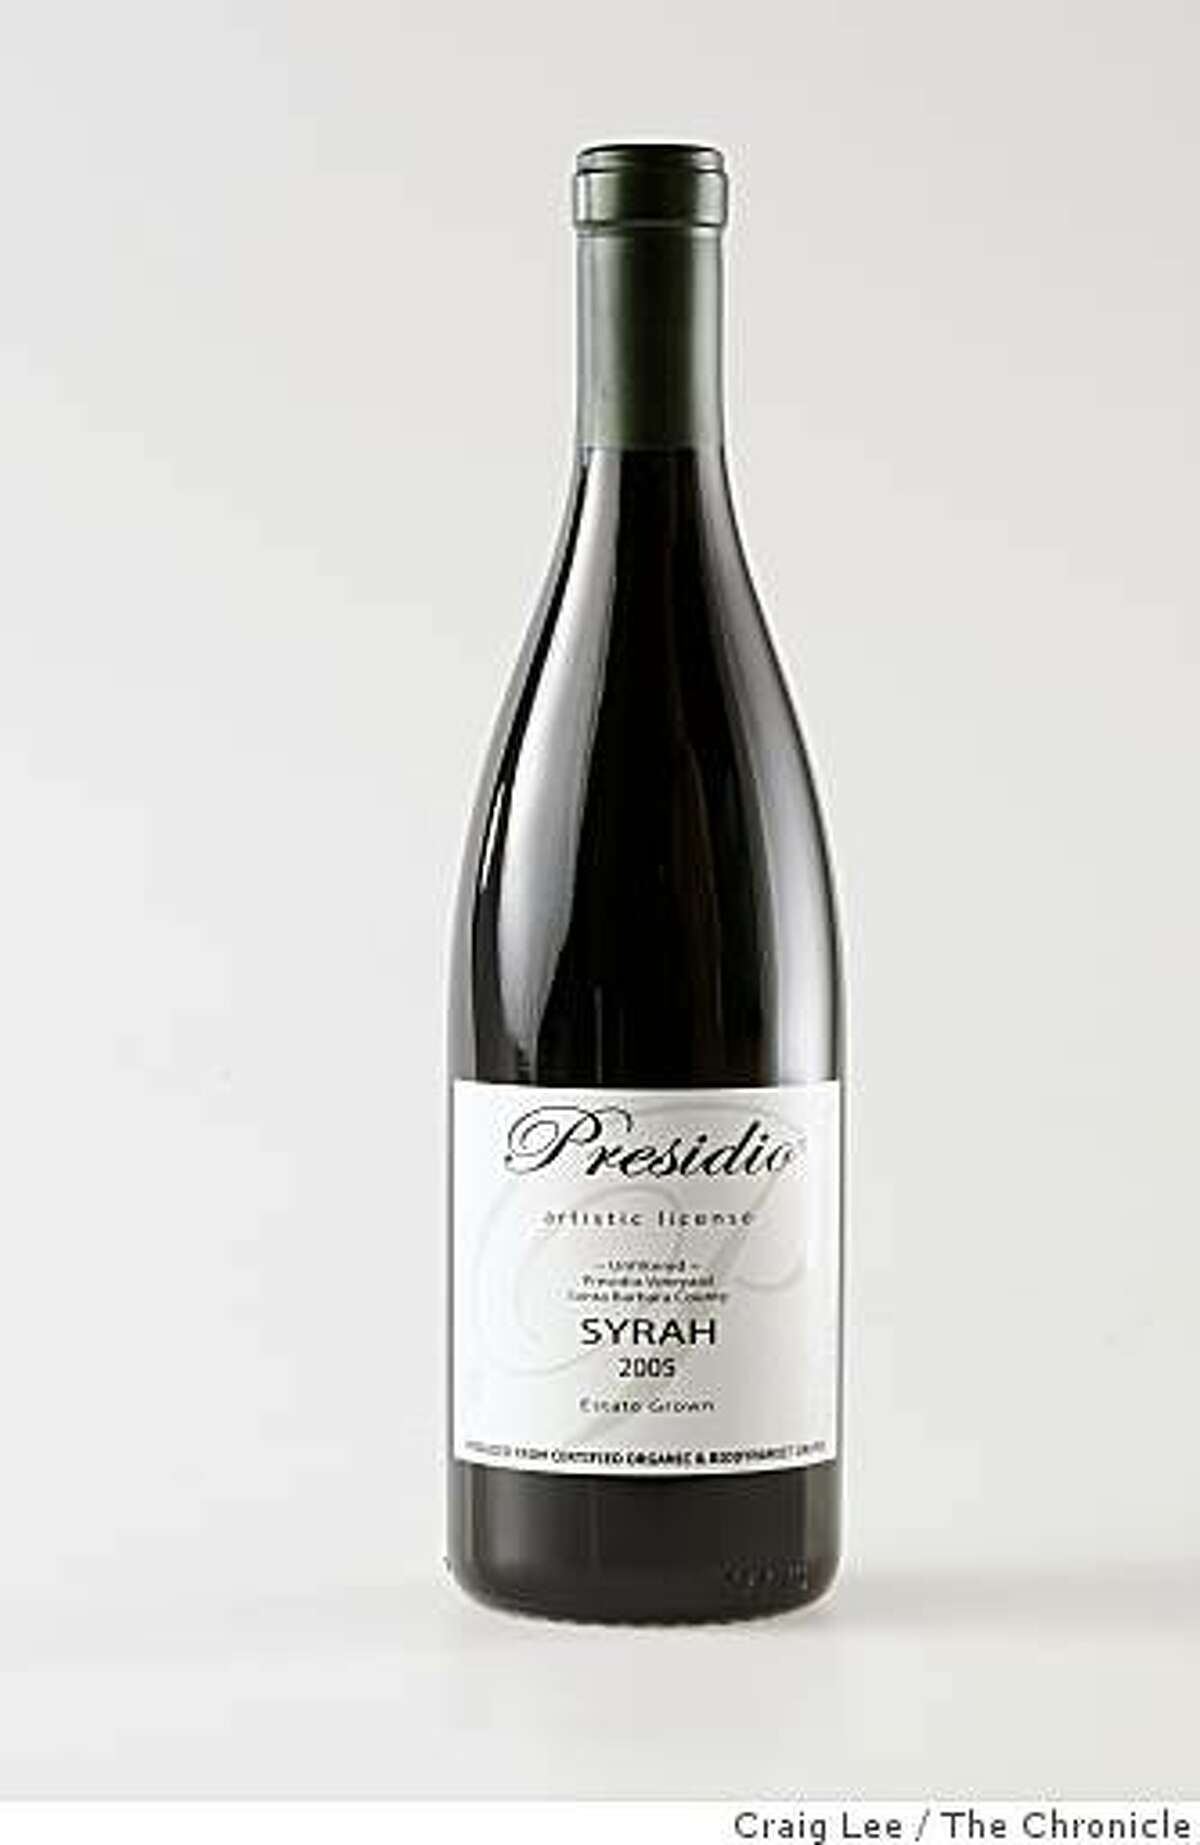 Presidio Syrah, one of the Top Ten wines out of the Top 100, in San Francisco, Calif., on November 13, 2008.